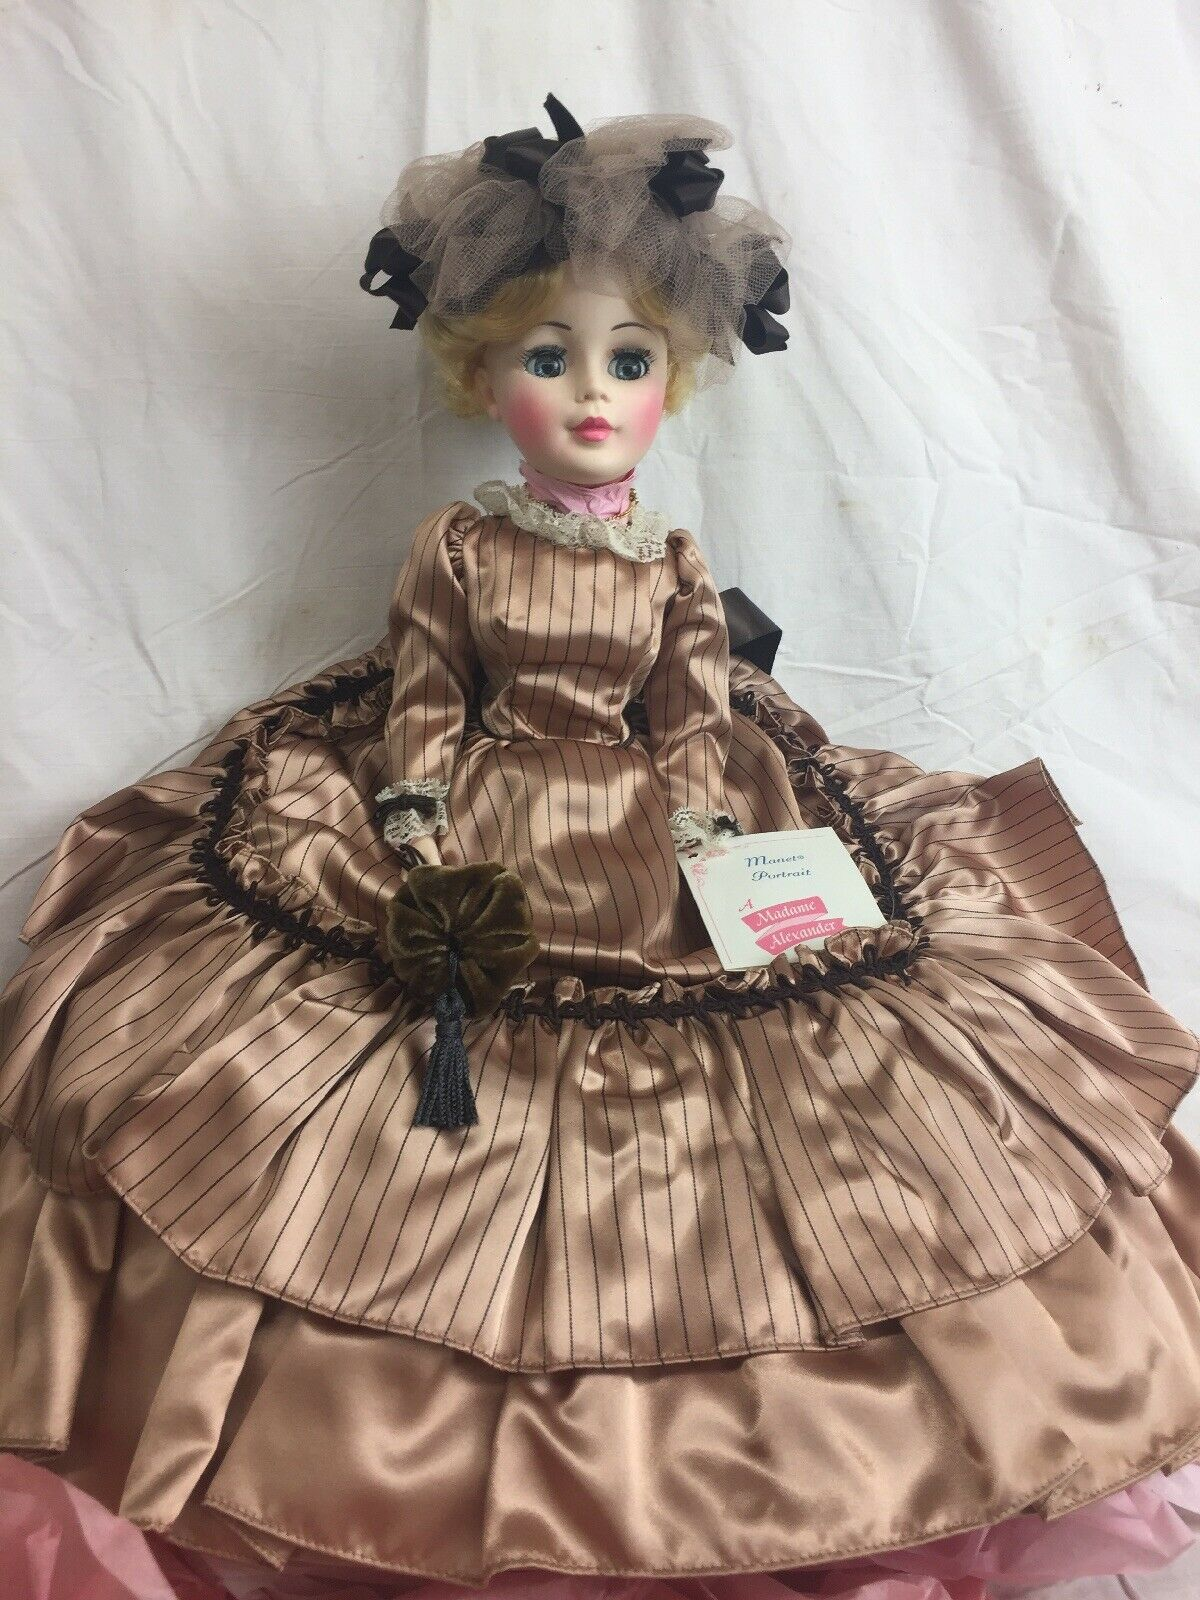 Alexander Portrait Doll Manet Fashion Lady Doll GORGEOUS  Never Used